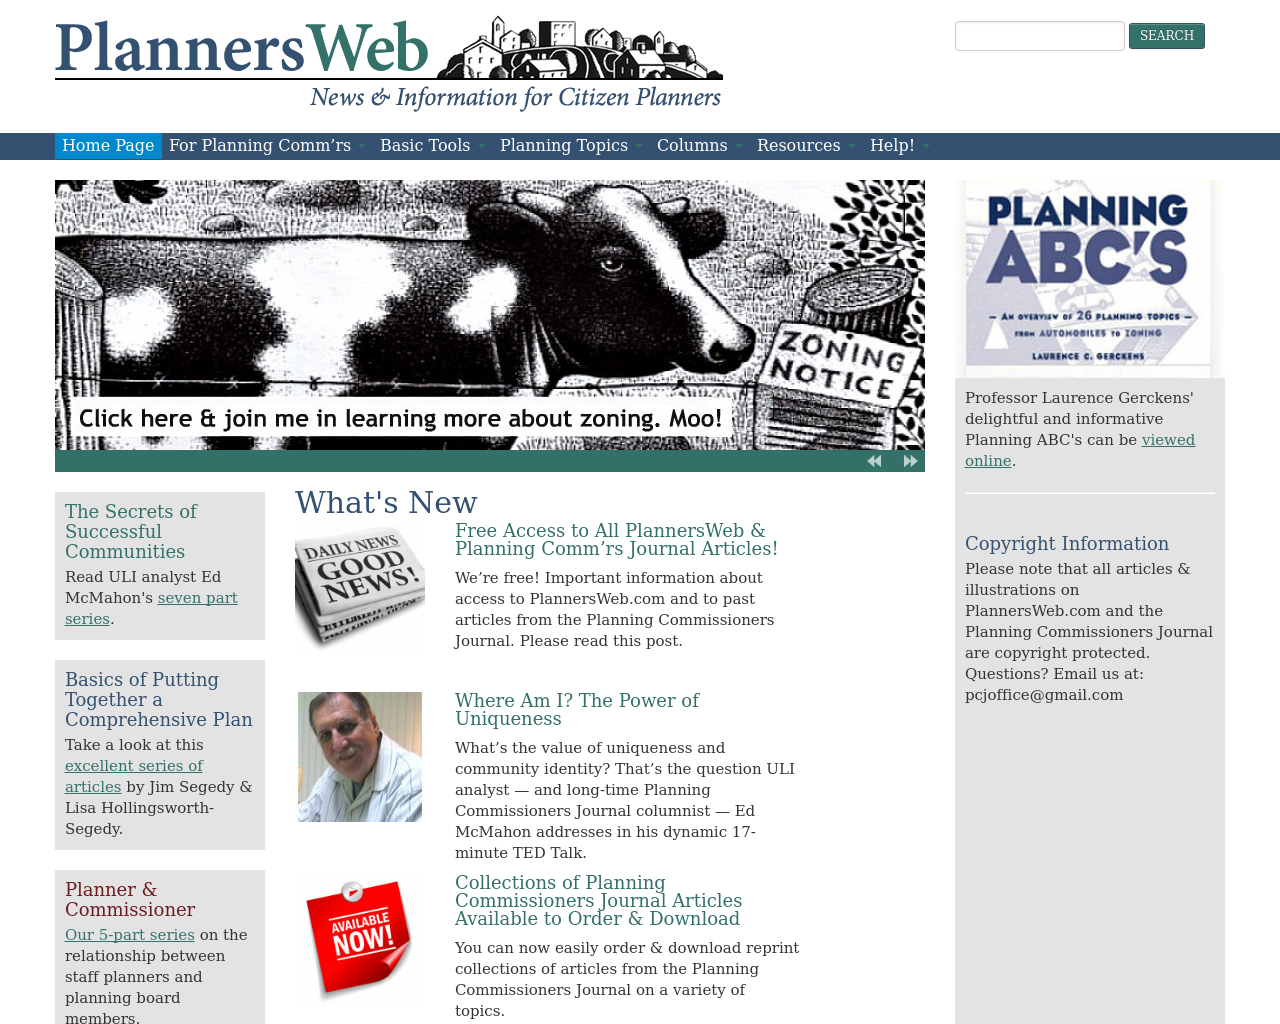 Planners-Web-Advertising-Reviews-Pricing